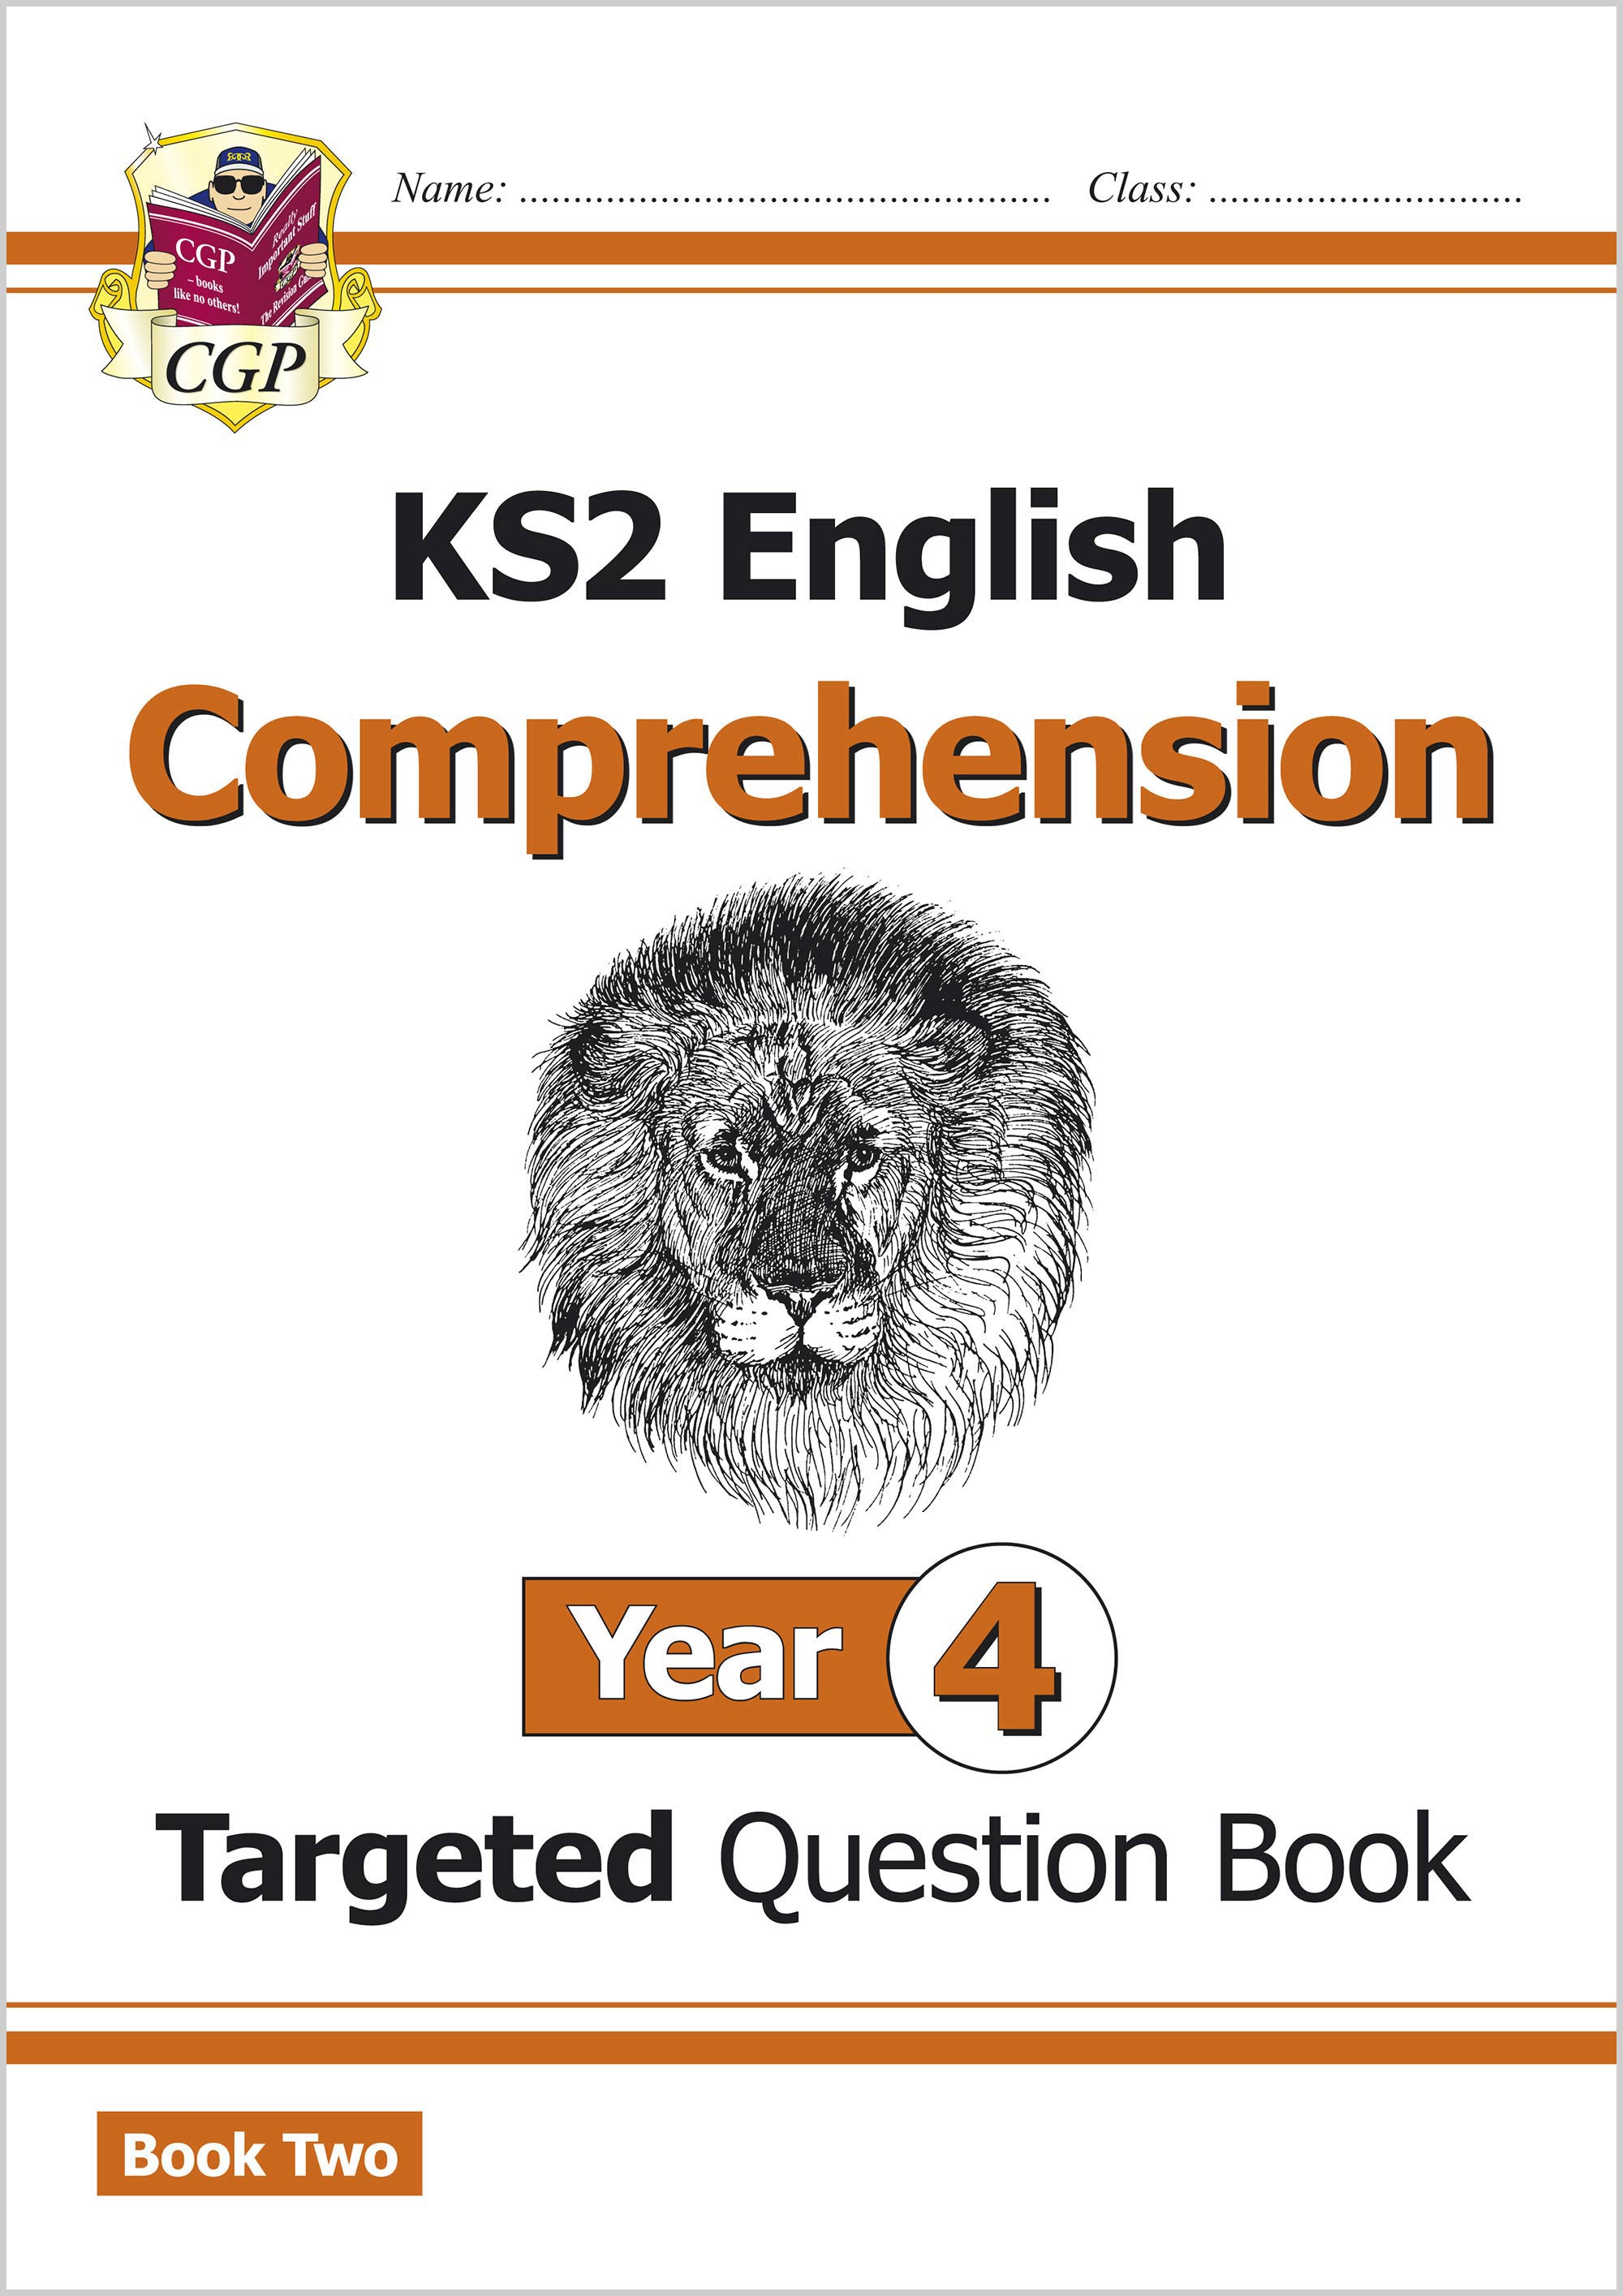 E4CW221 - KS2 English Targeted Question Book: Year 4 Comprehension - Book 2